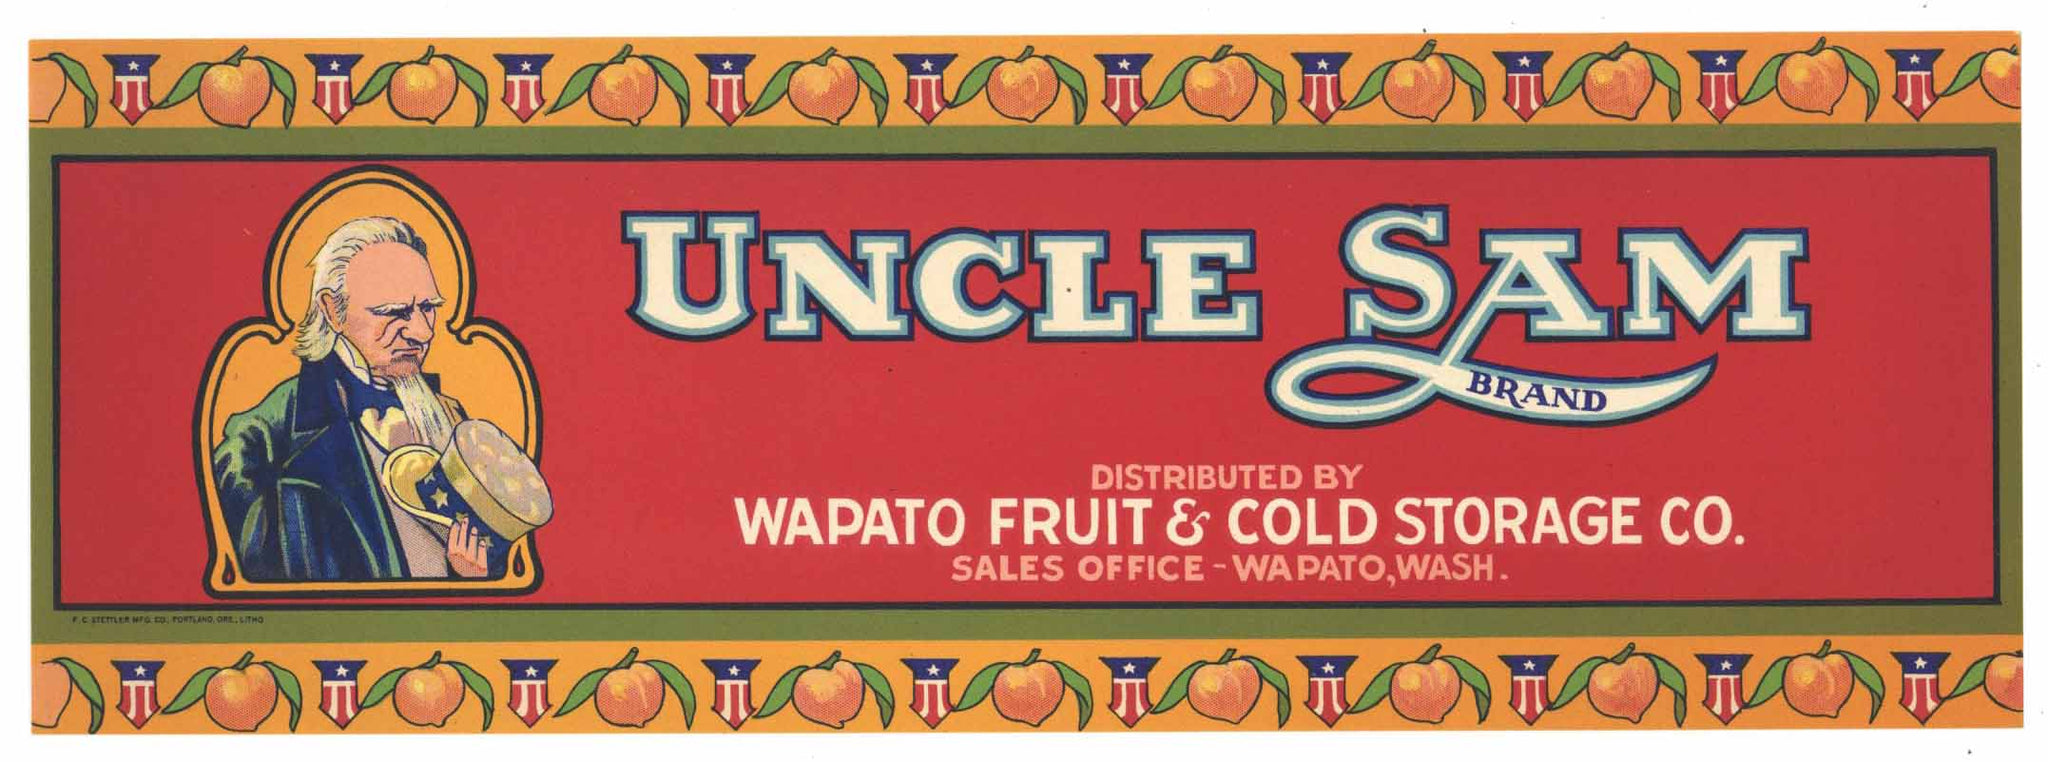 Uncle Sam Brand Vintage Washington Fruit Crate Label